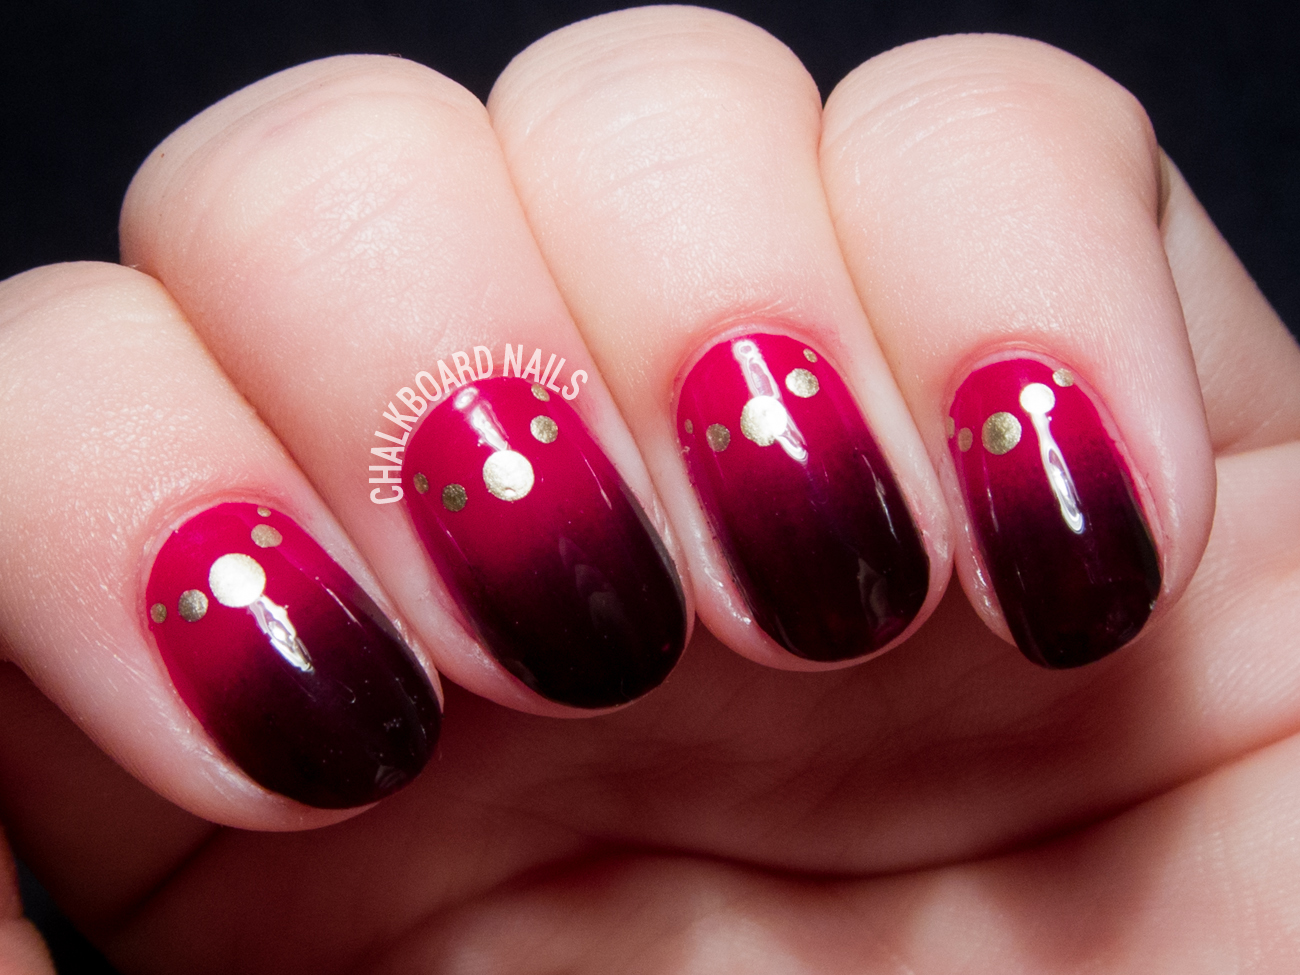 Bordeaux gradient with jewelry half moons by @chalkboardnails